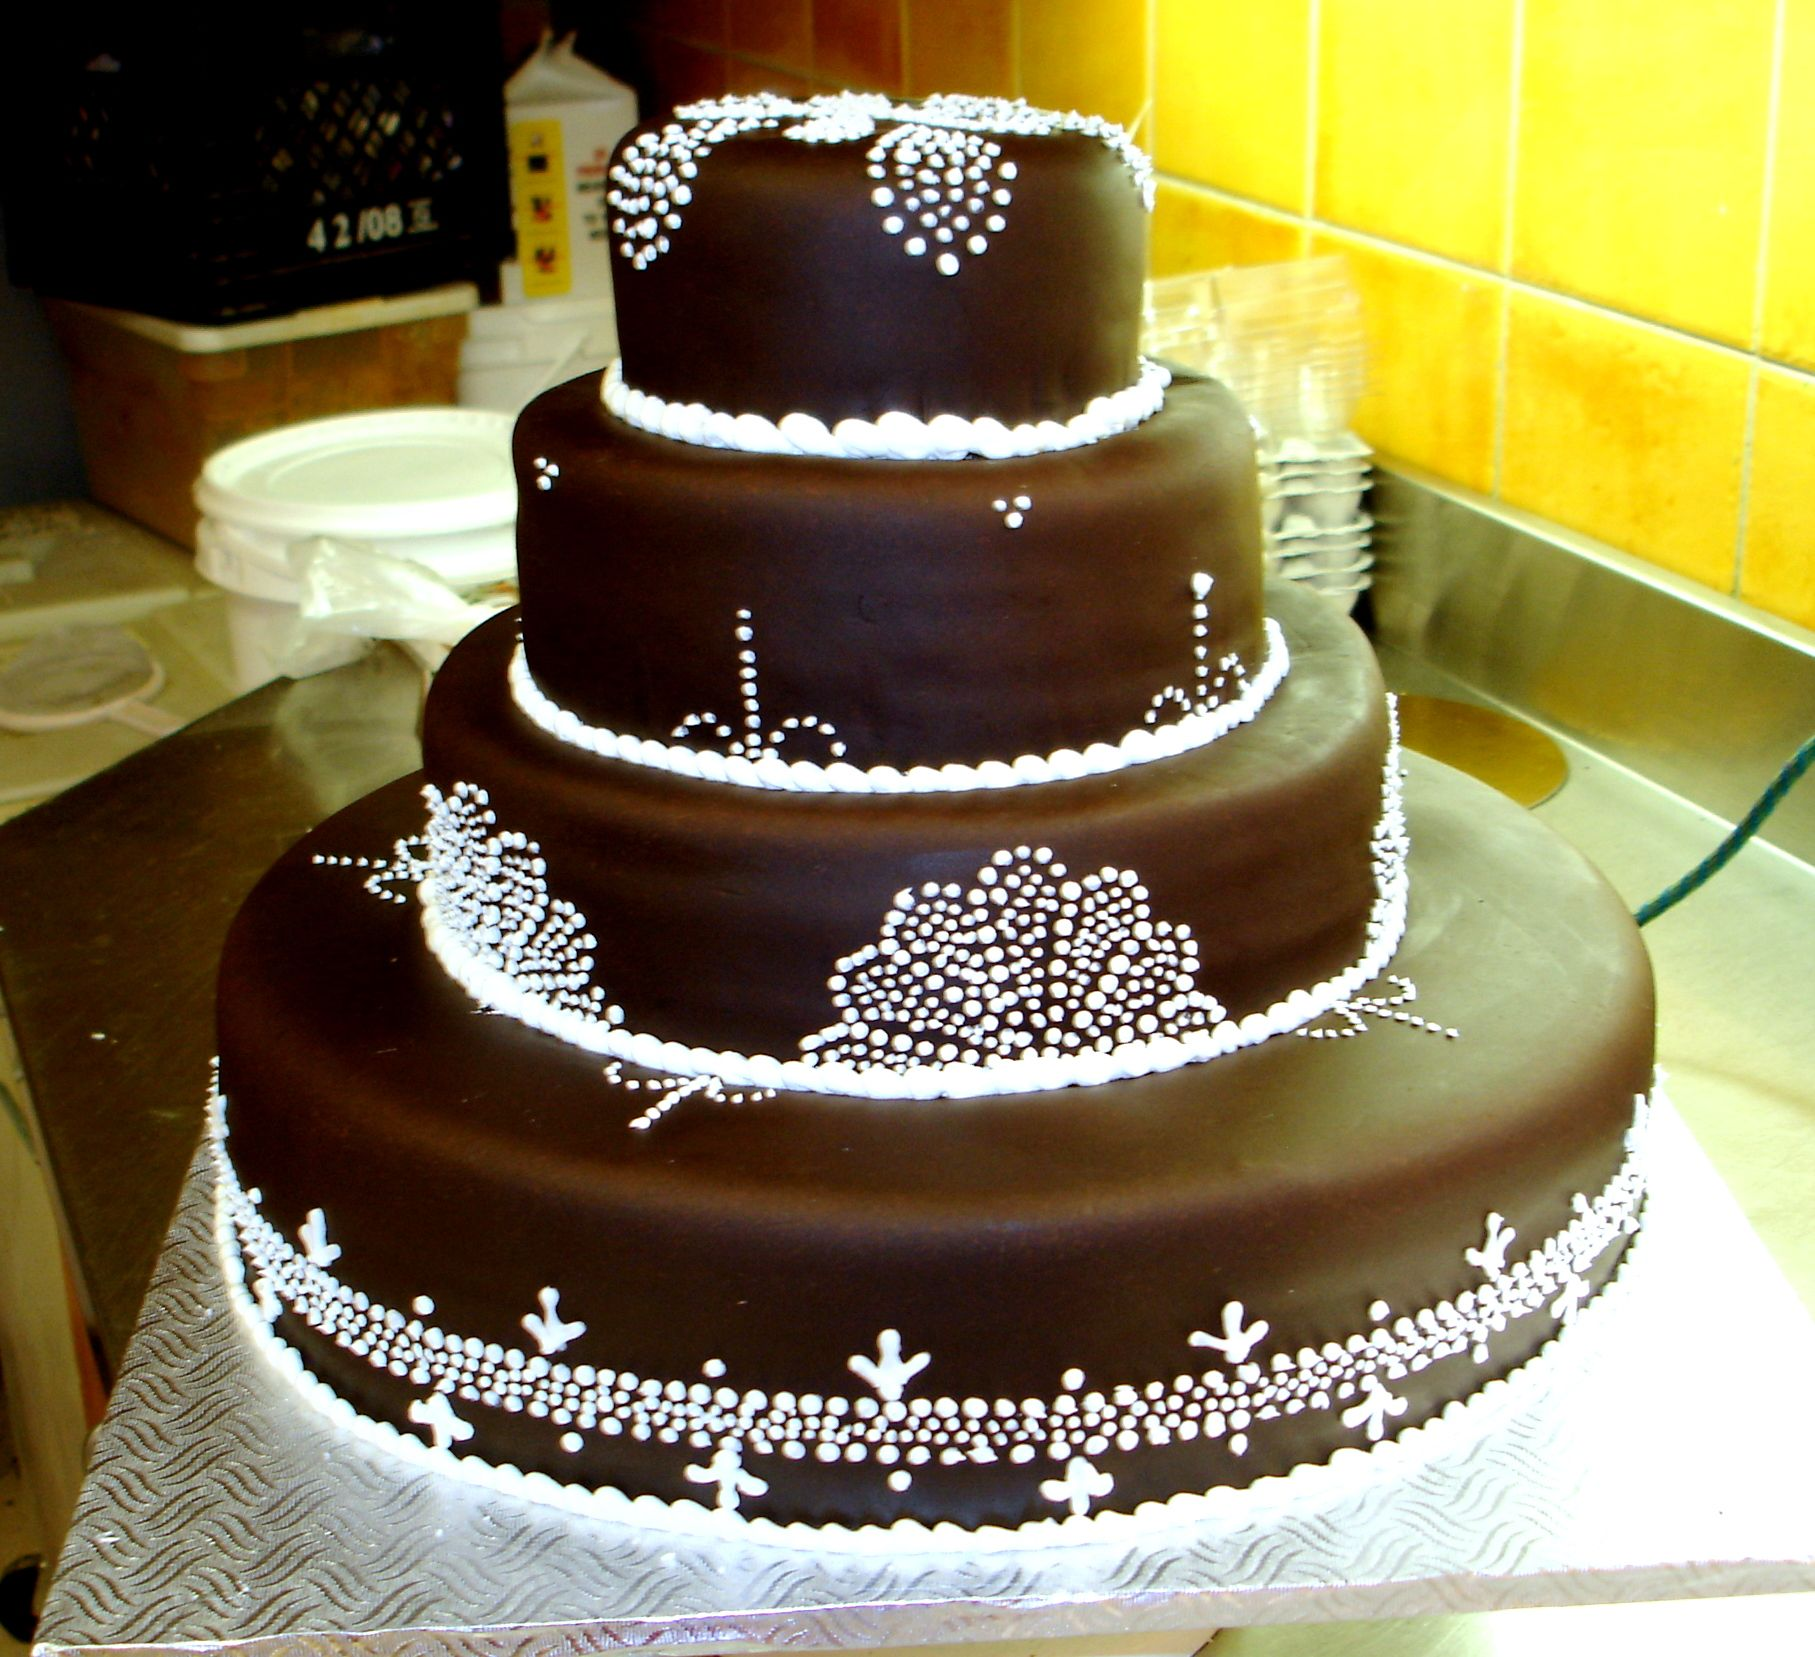 Cakes images wedding cake hd wallpaper and background photos - Image For Chocolate Fondant Wedding Cake Free Wallpaper For Desktop